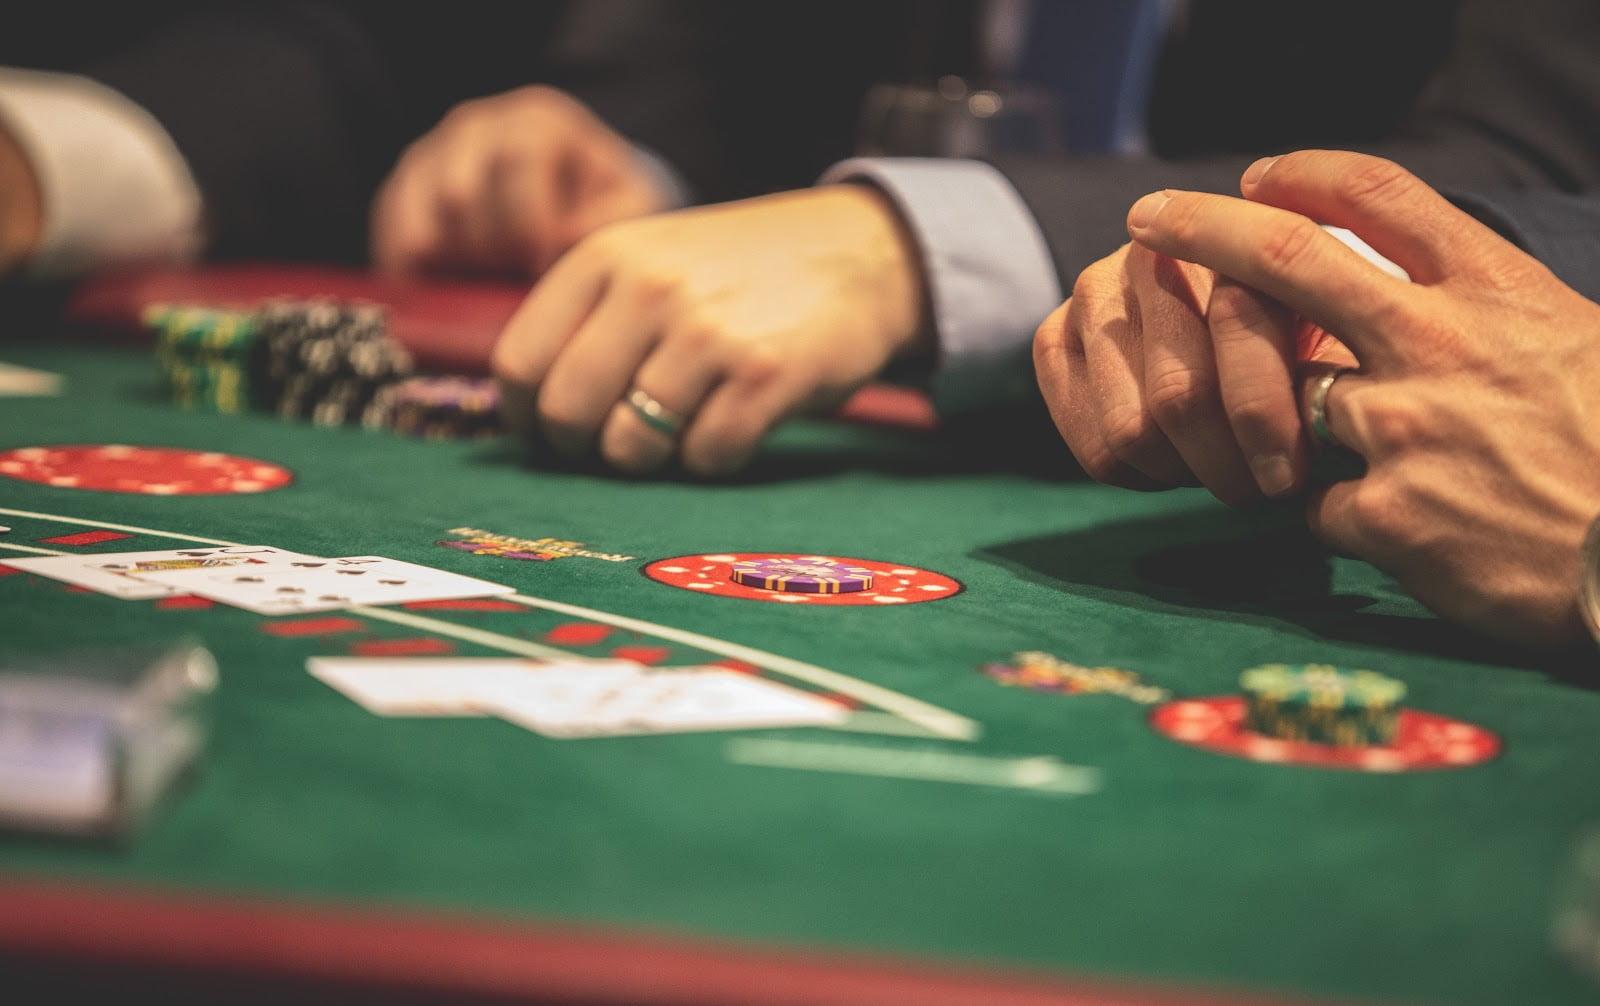 A picture containing room, gambling house, scene, person Description automatically generated